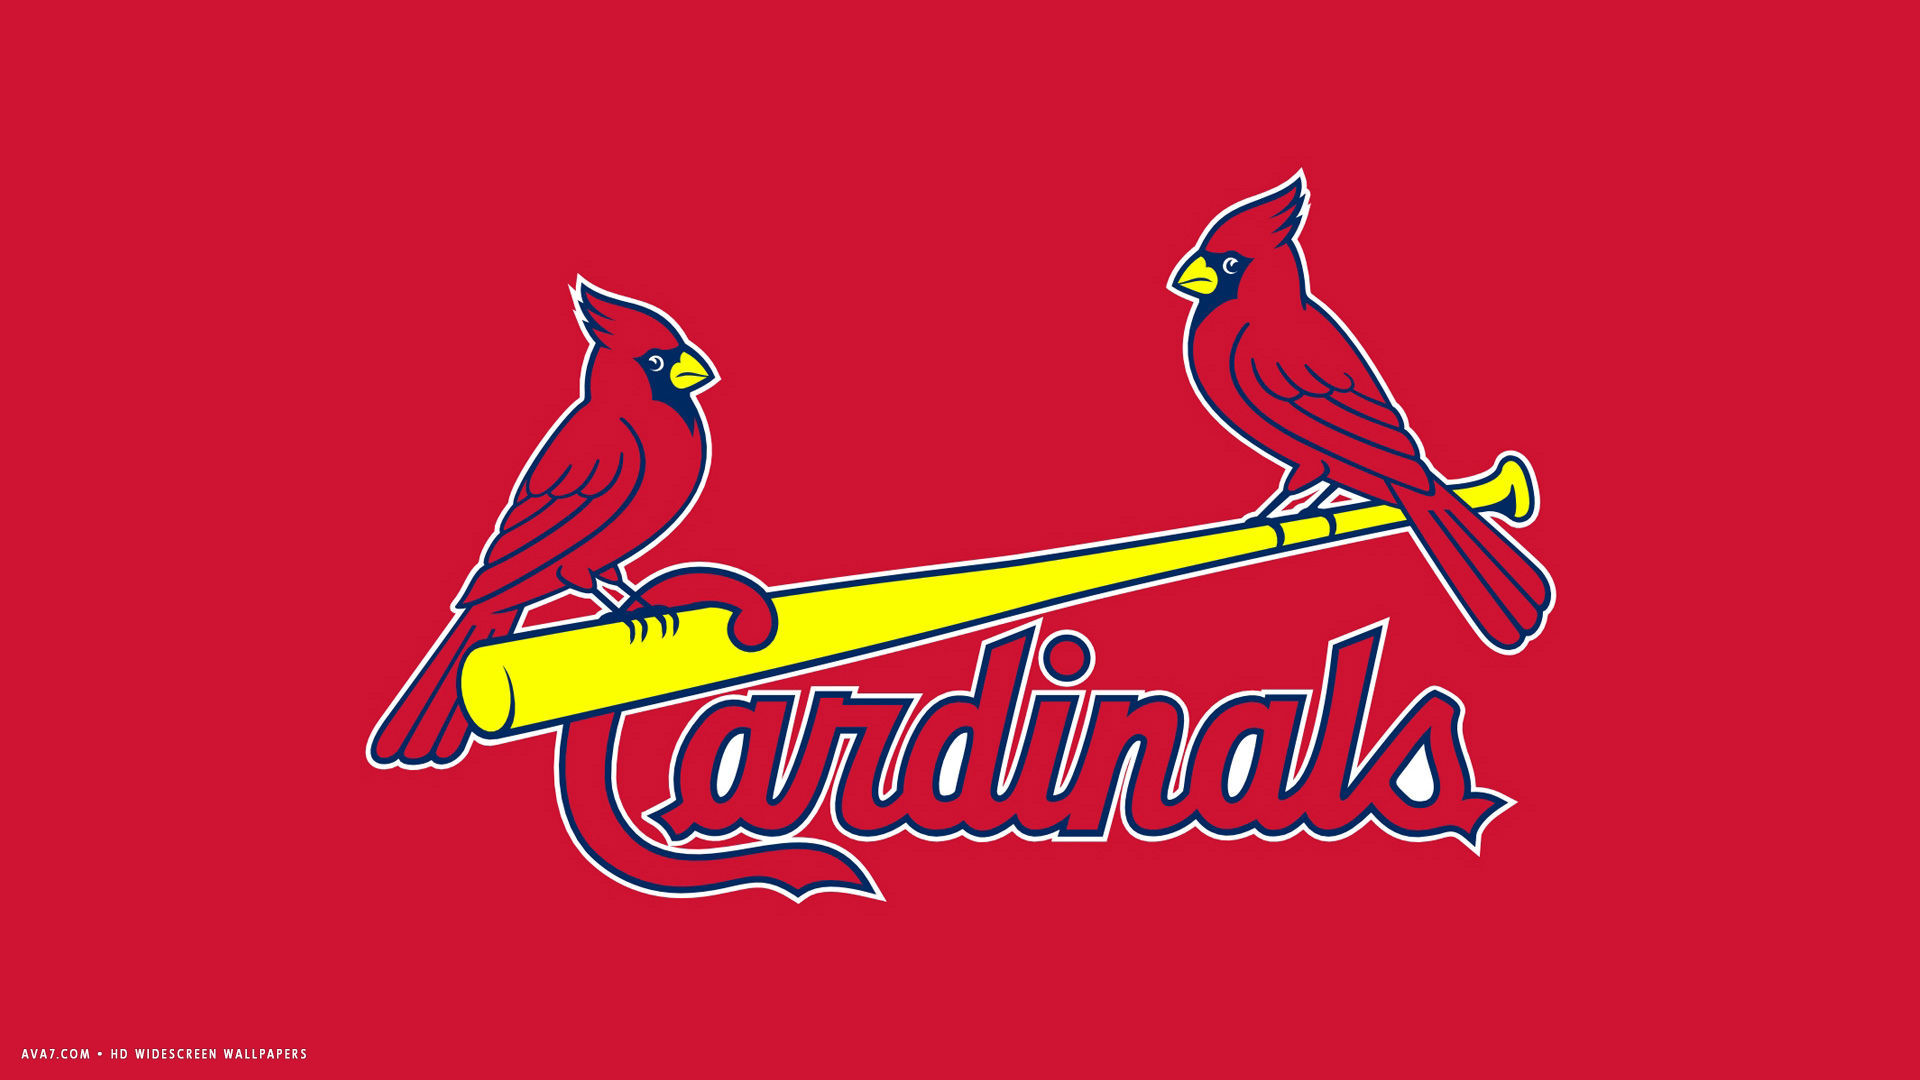 1920x1080 st louis cardinals mlb baseball team hd widescreen wallpaper